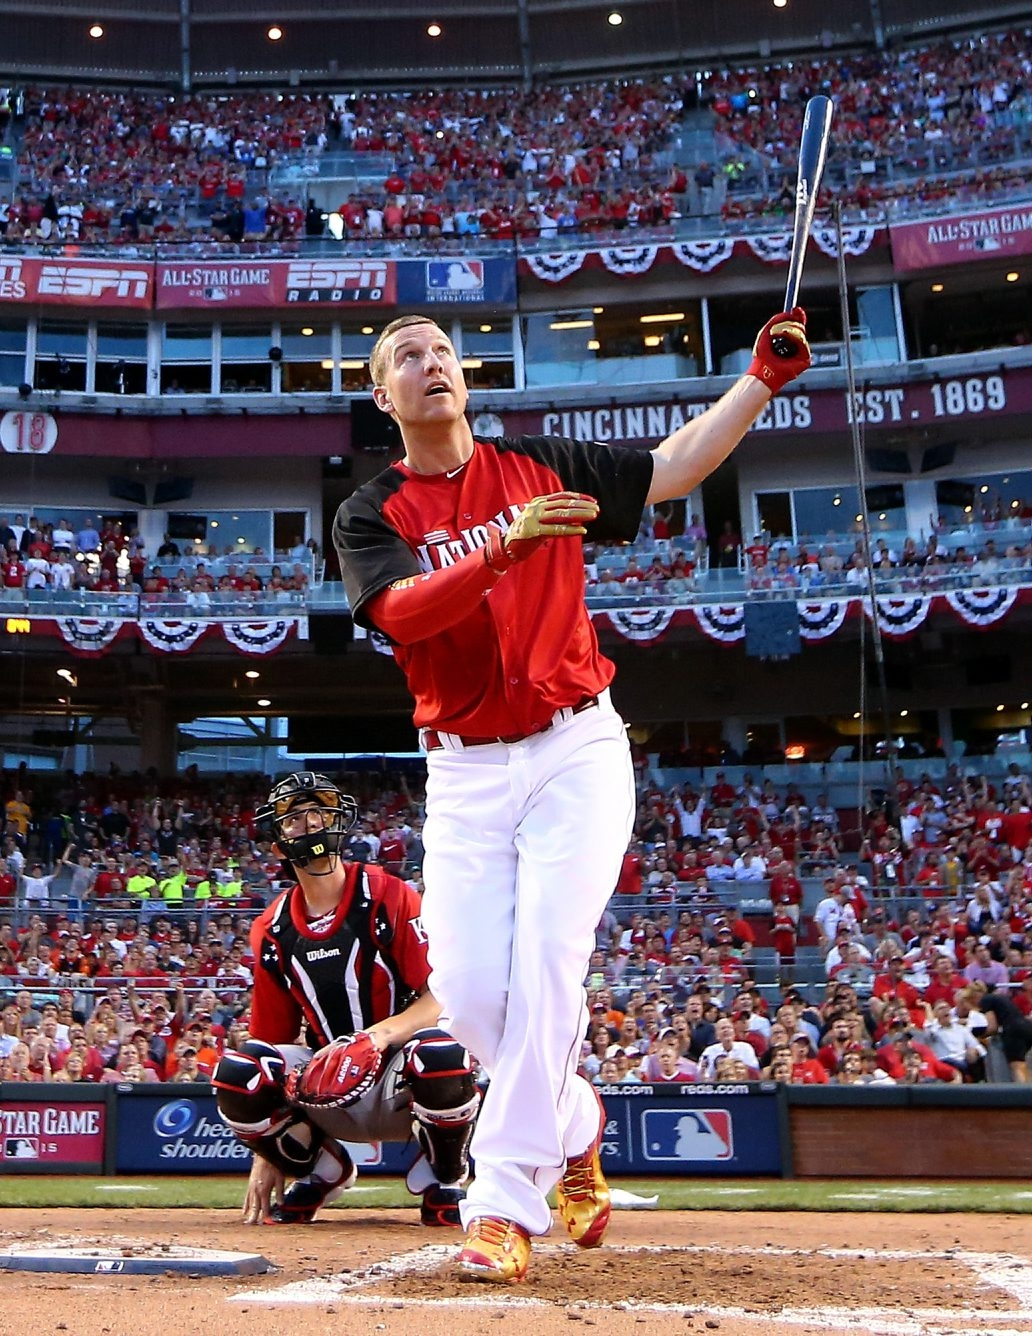 Hometown favorite Todd Frazier helped make the Home Run Derby a dramatic success during the All-Star festivities in Cincinnati.